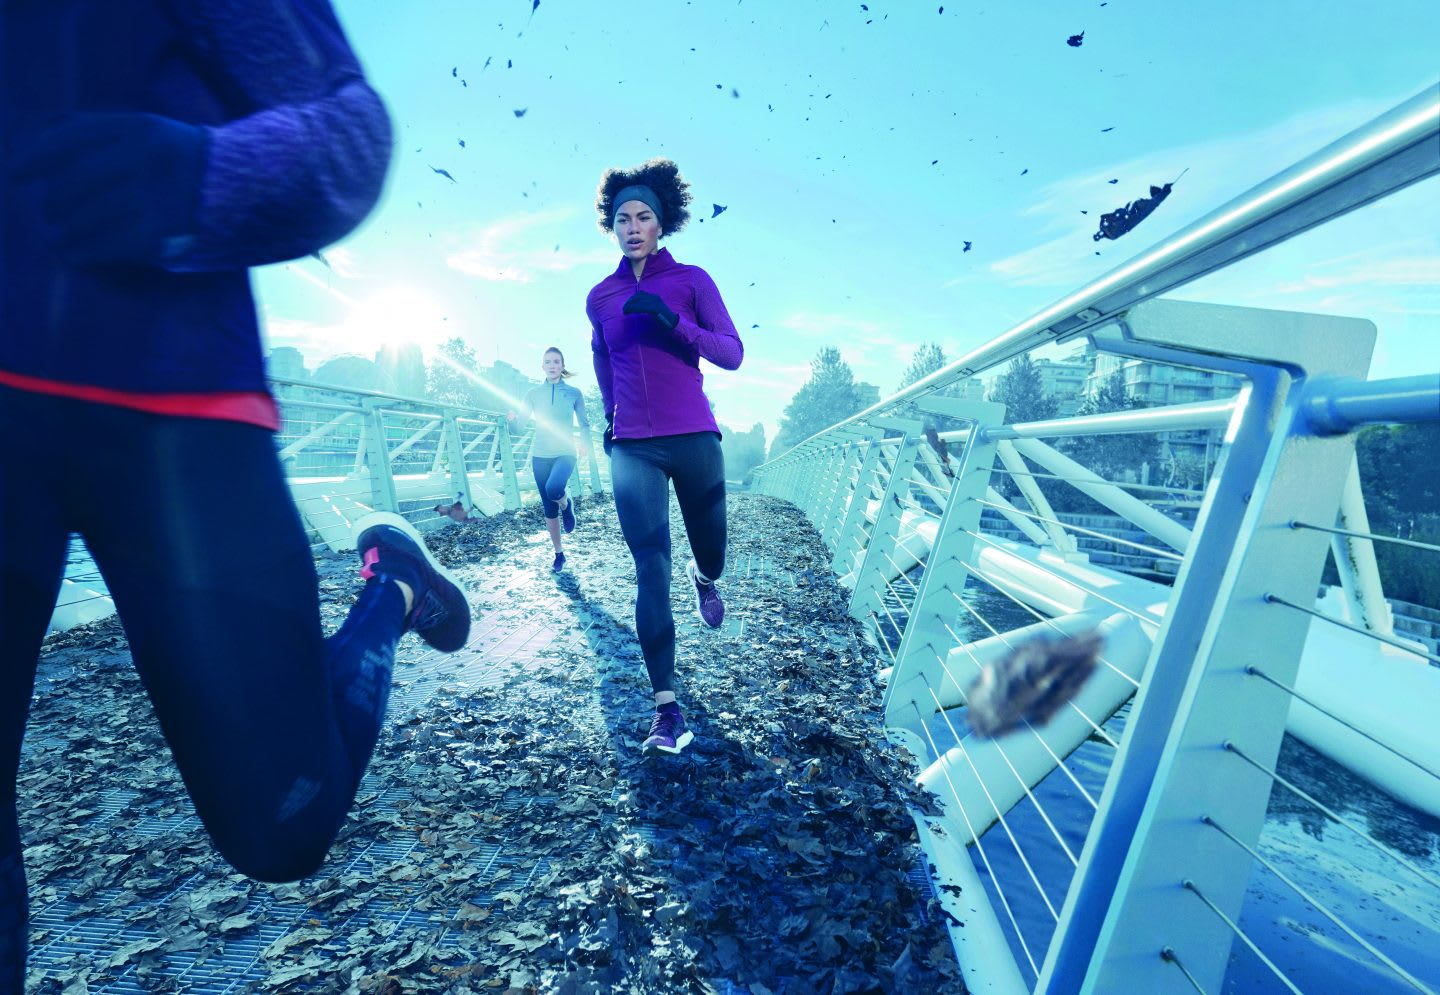 Women Running in winter times on a bridge, adidas, GamePlan A, holidays, holiday break, relax, motivation